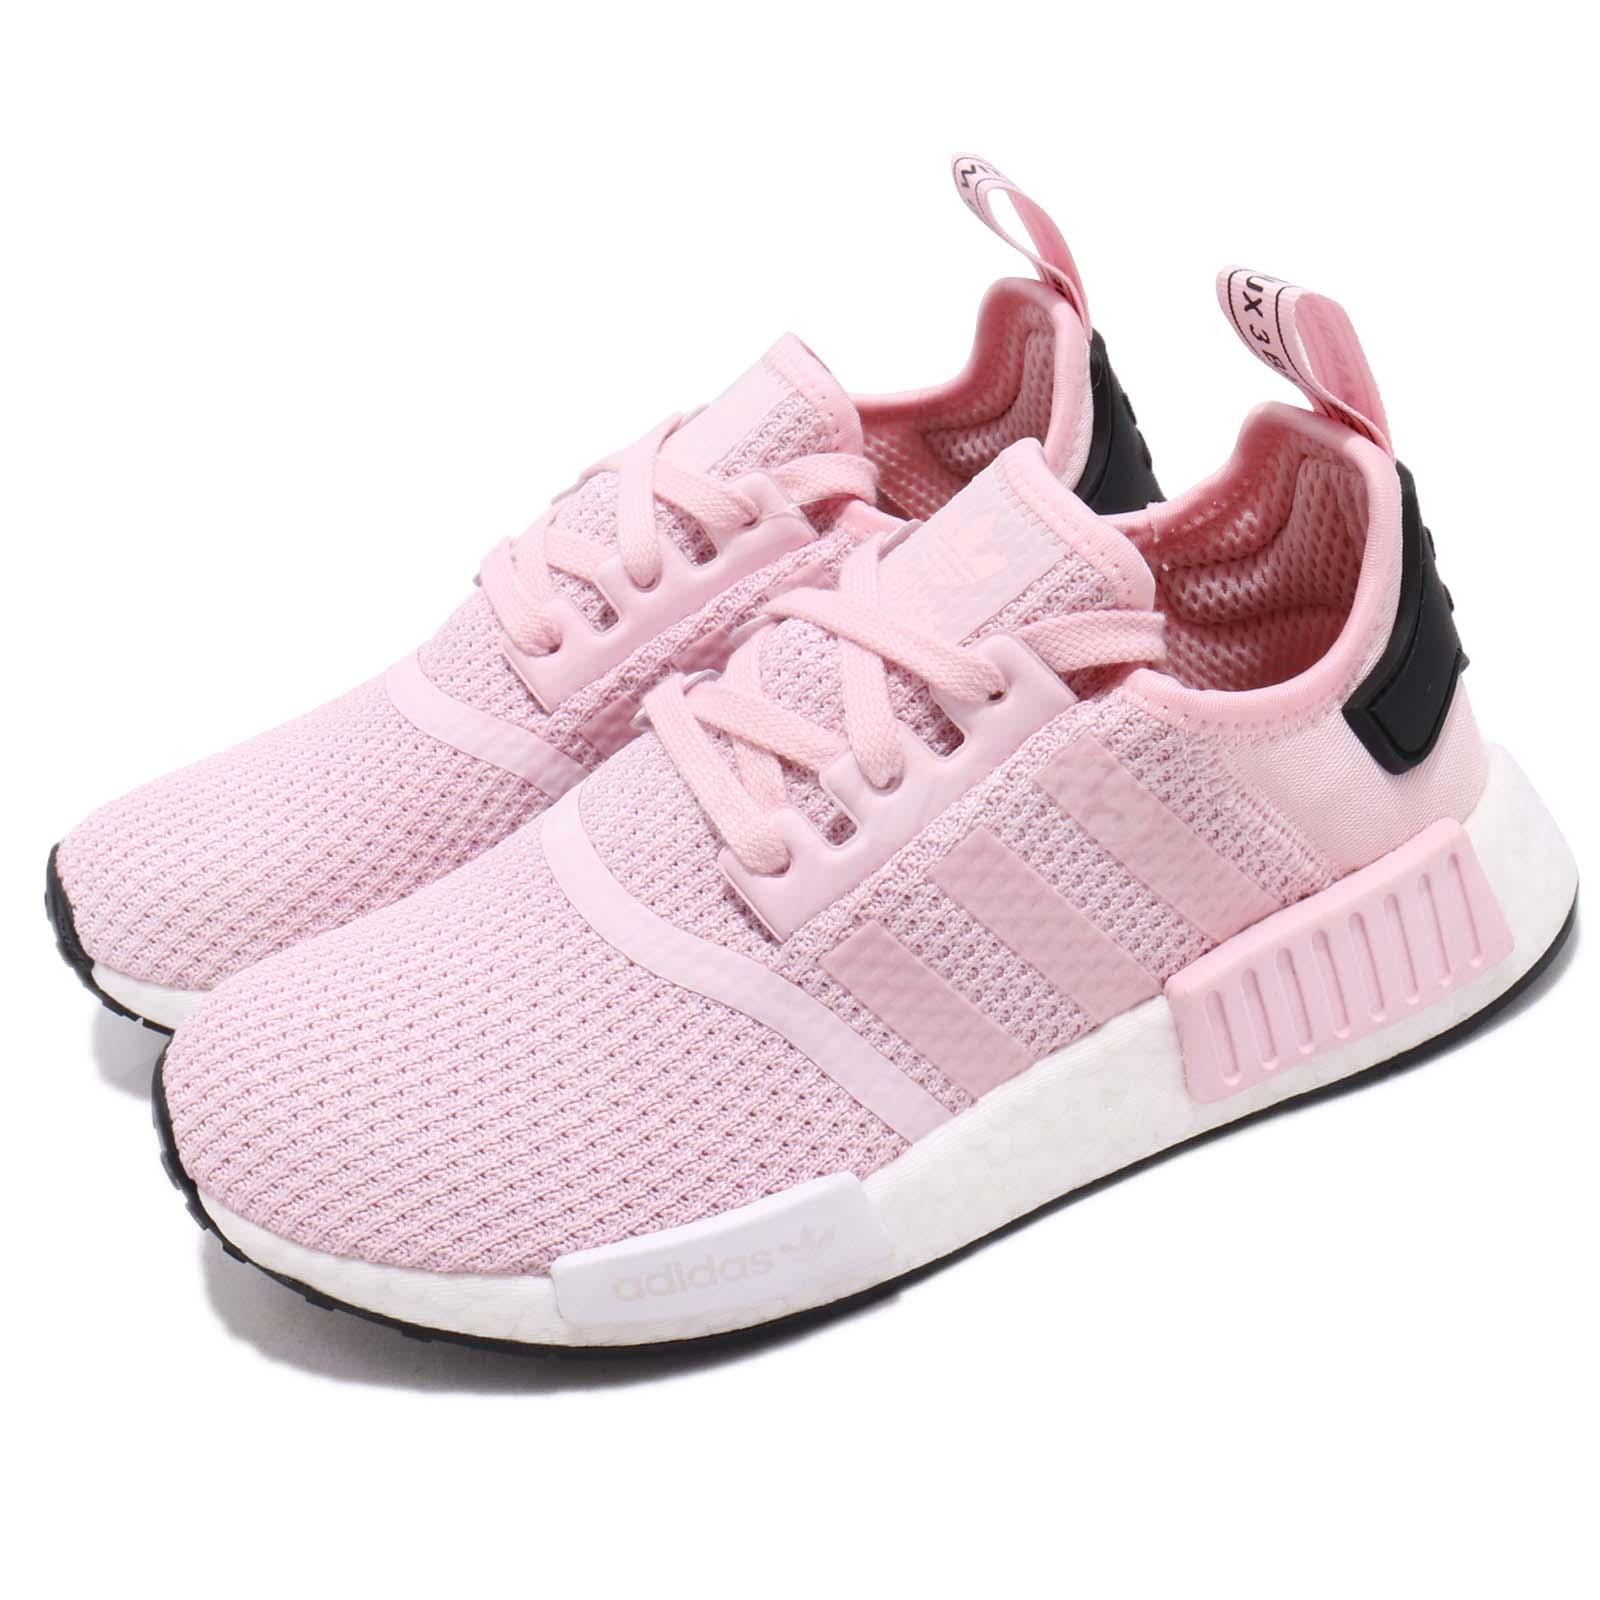 online store 83296 63263 Details about adidas Originals NMD_R1 W Boost Pink White Black Women  Running Shoes B37648